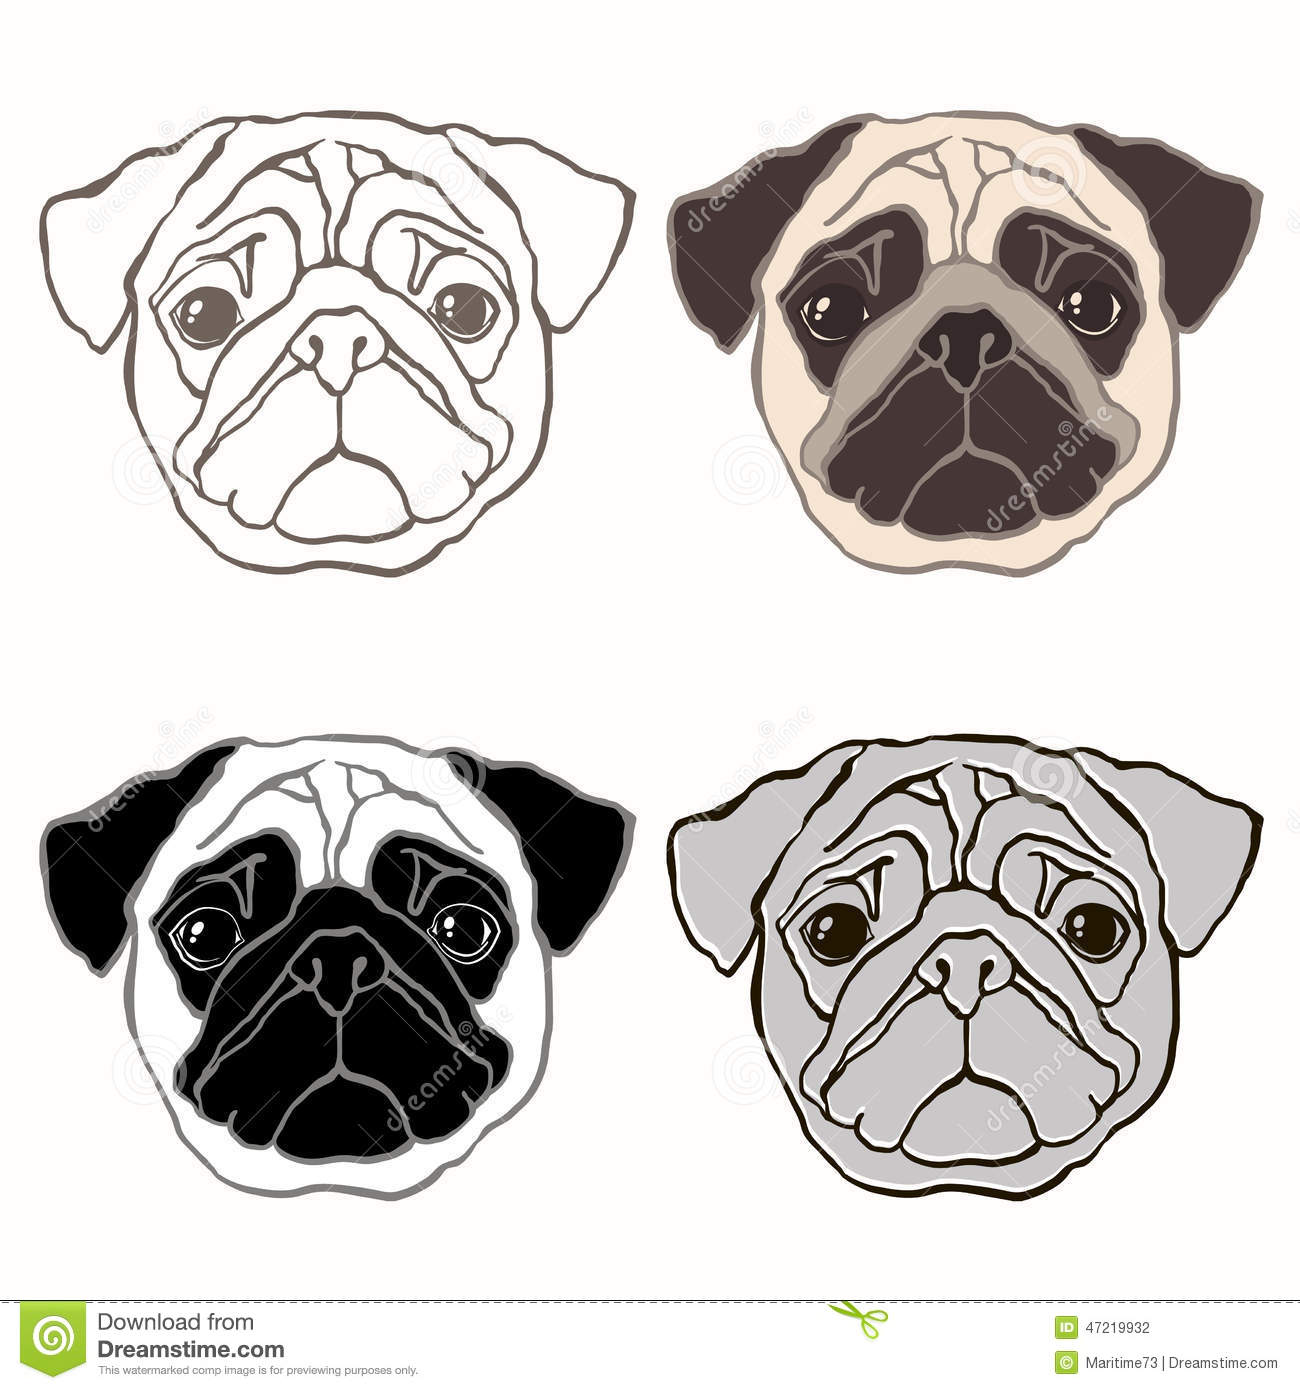 pugs in black and white clip art